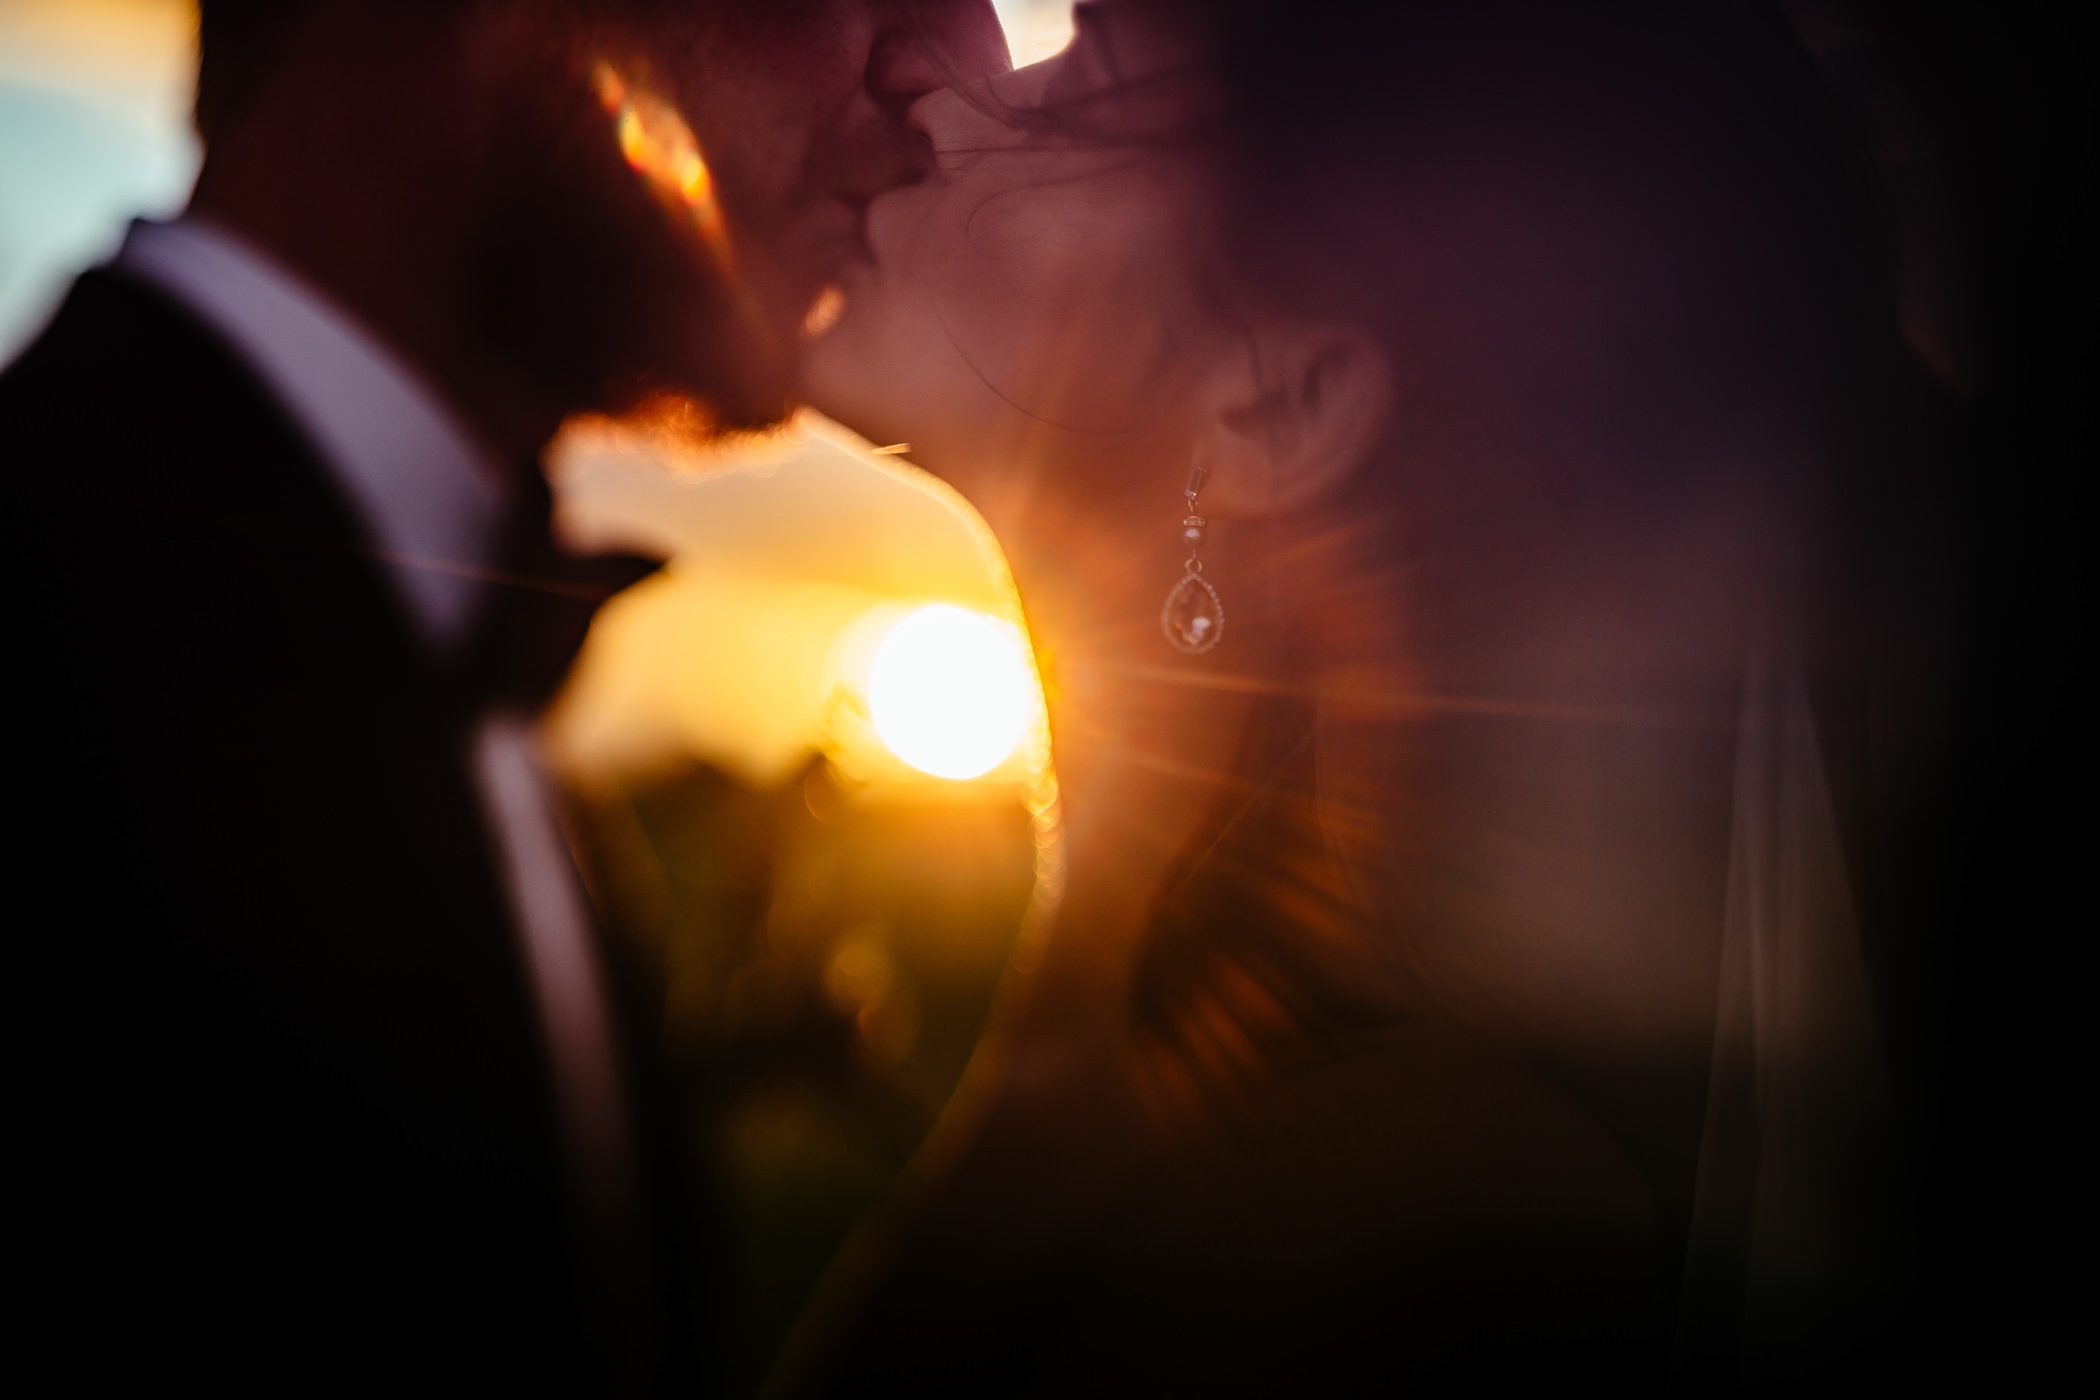 sansom-photography-becky-david-cheshire-wedding-7693